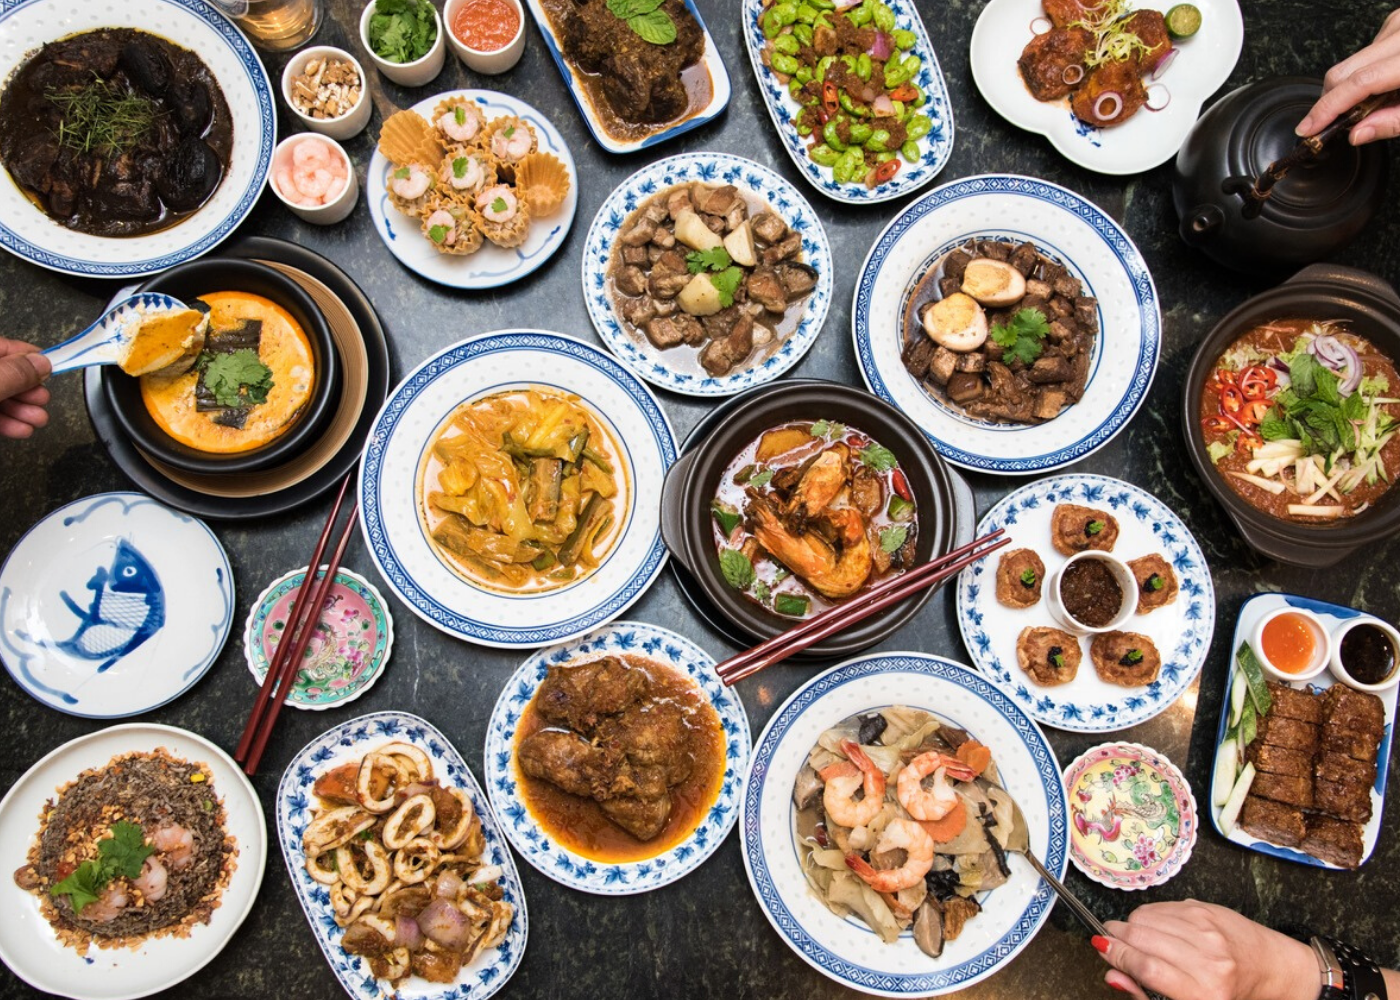 Indocafe | Peranakan restaurants we love: Where to go for an authentic Nyonya meal in Singapore